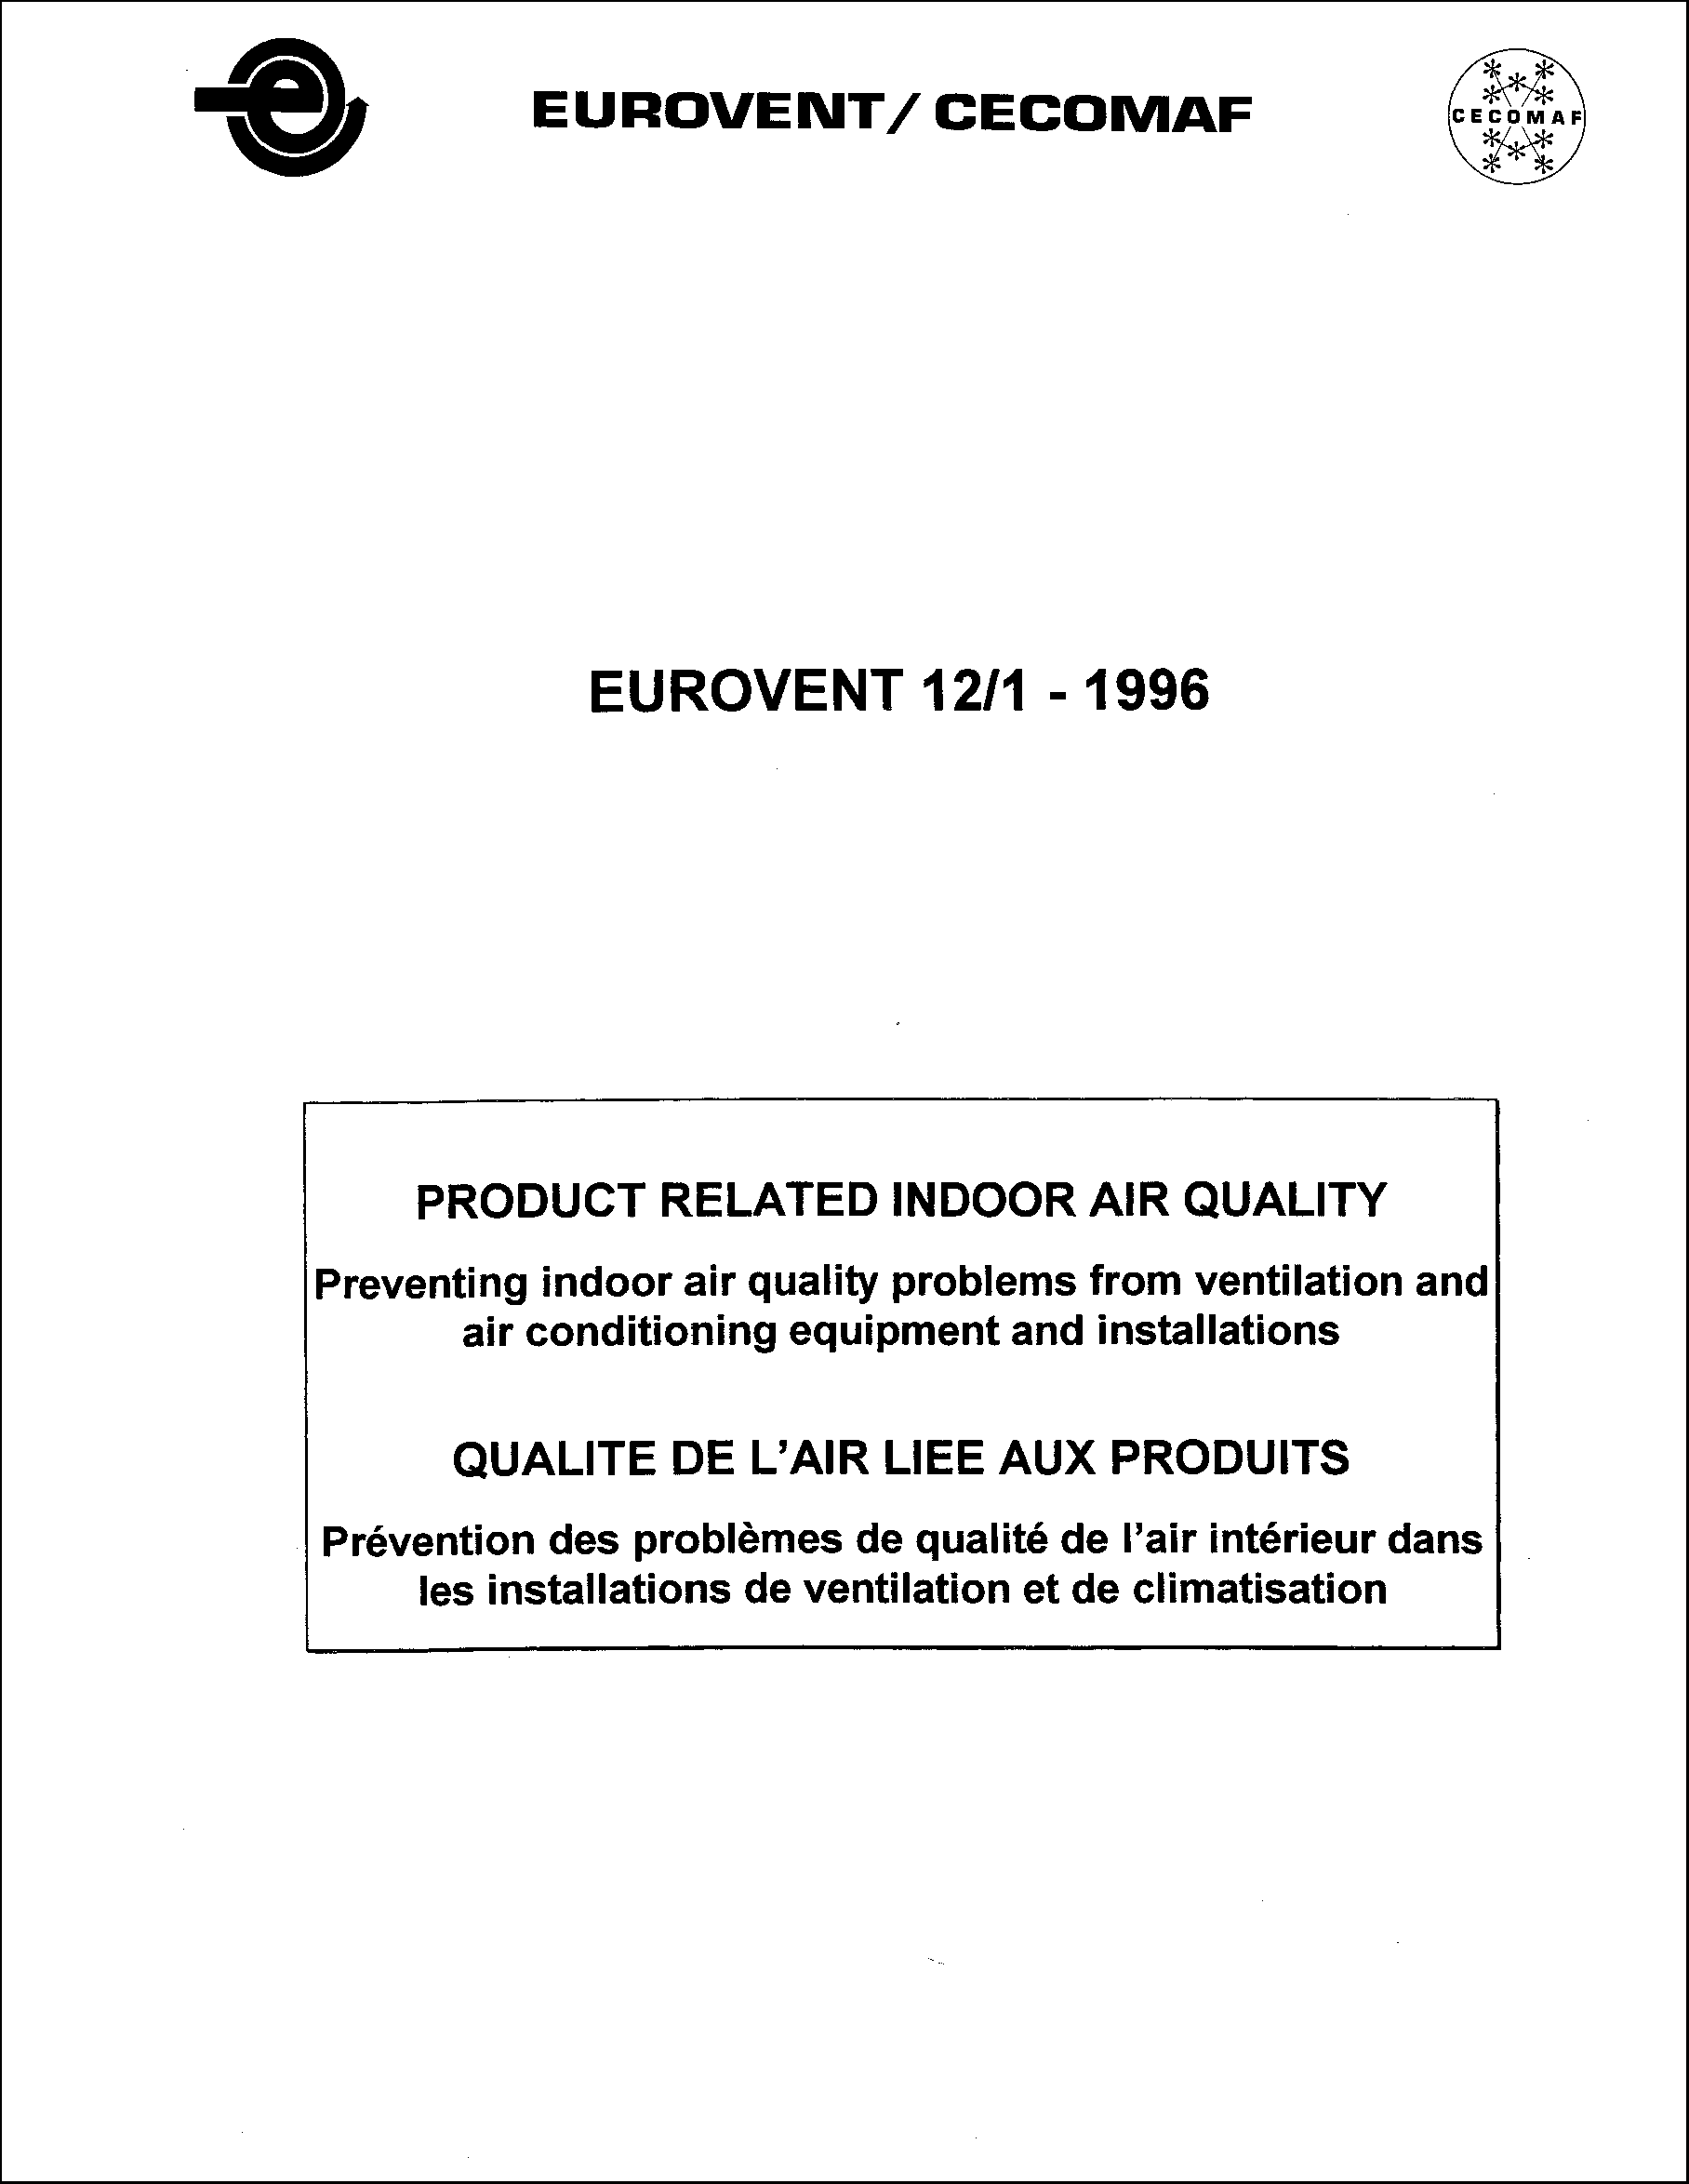 1996 - Product related indoor air quality